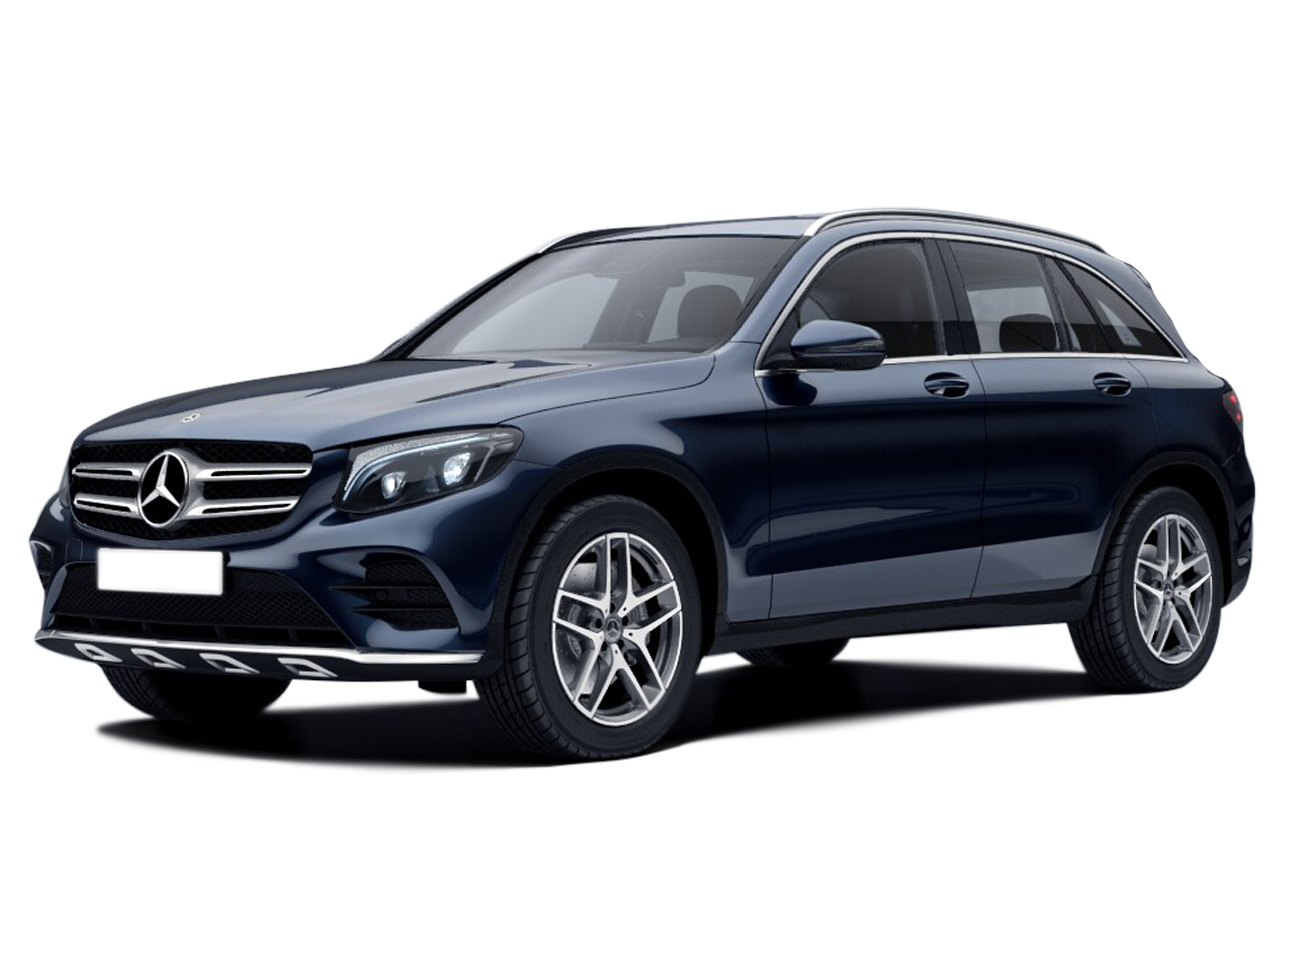 MERCEDES-BENZ - GLC 250 - 2.0 CGI GASOLINA HIGHWAY 4MATIC 9G-TRONIC